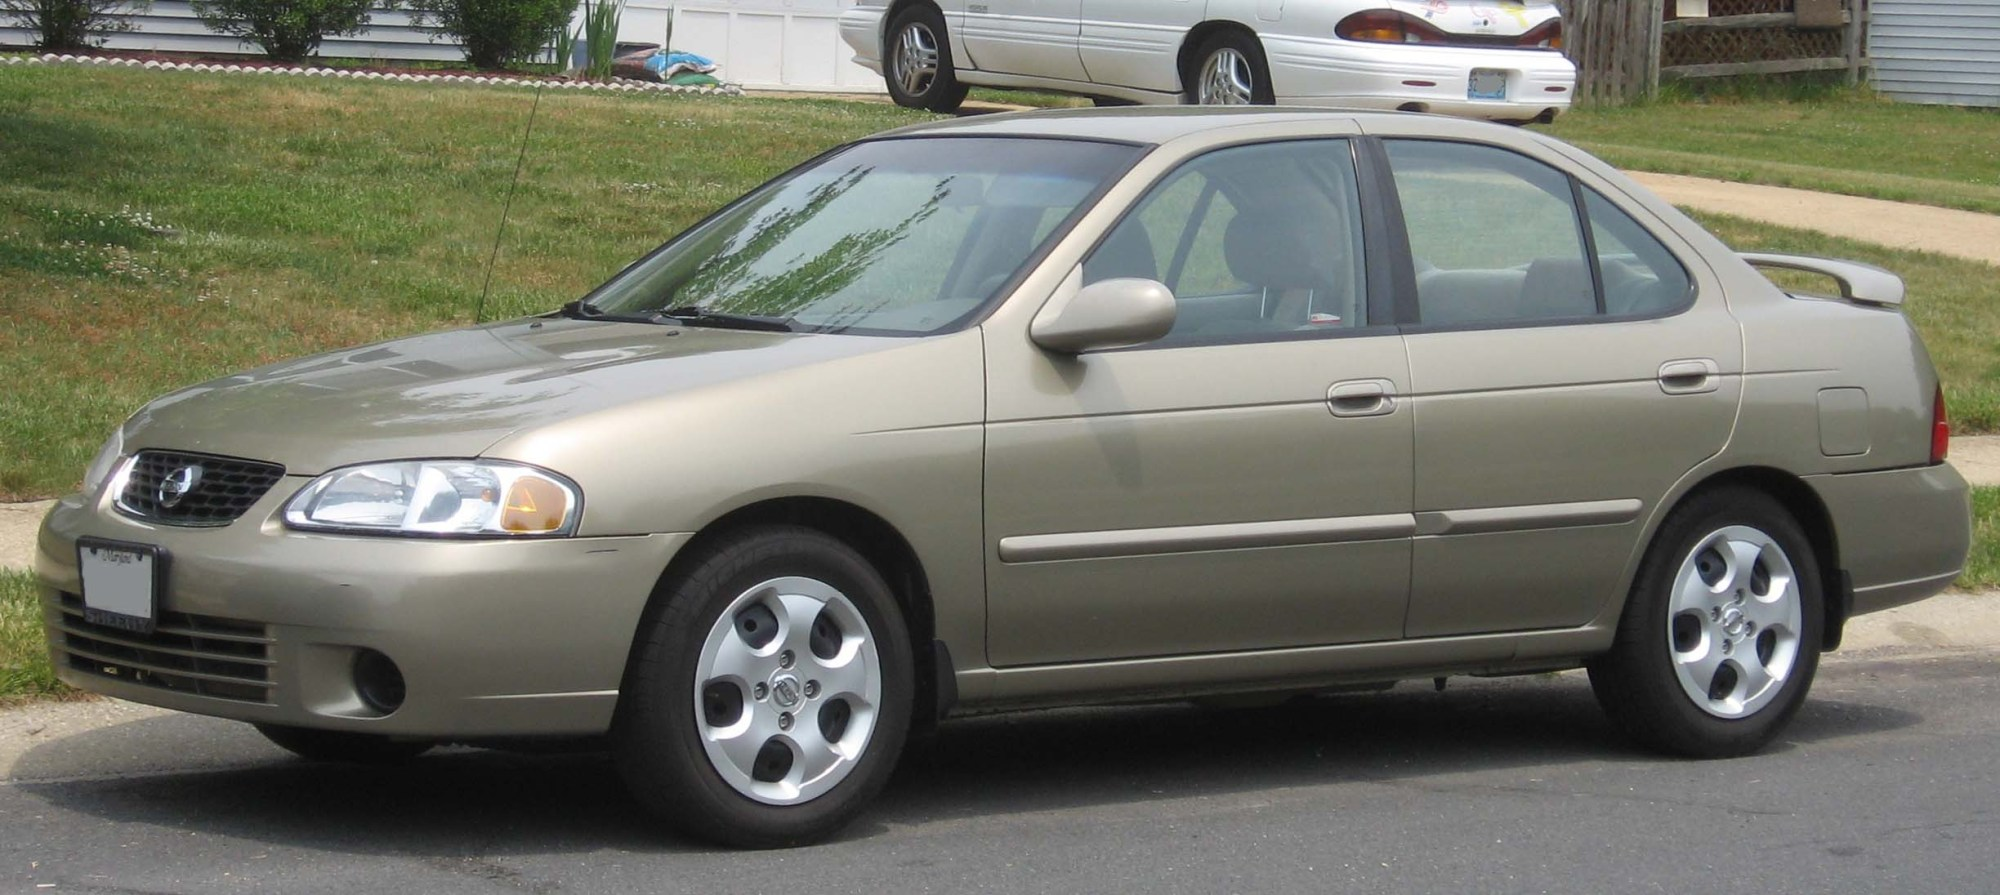 hight resolution of nissan sentra wikipedia 2001 nissan sentra gxe l4 18 engine parts diagram